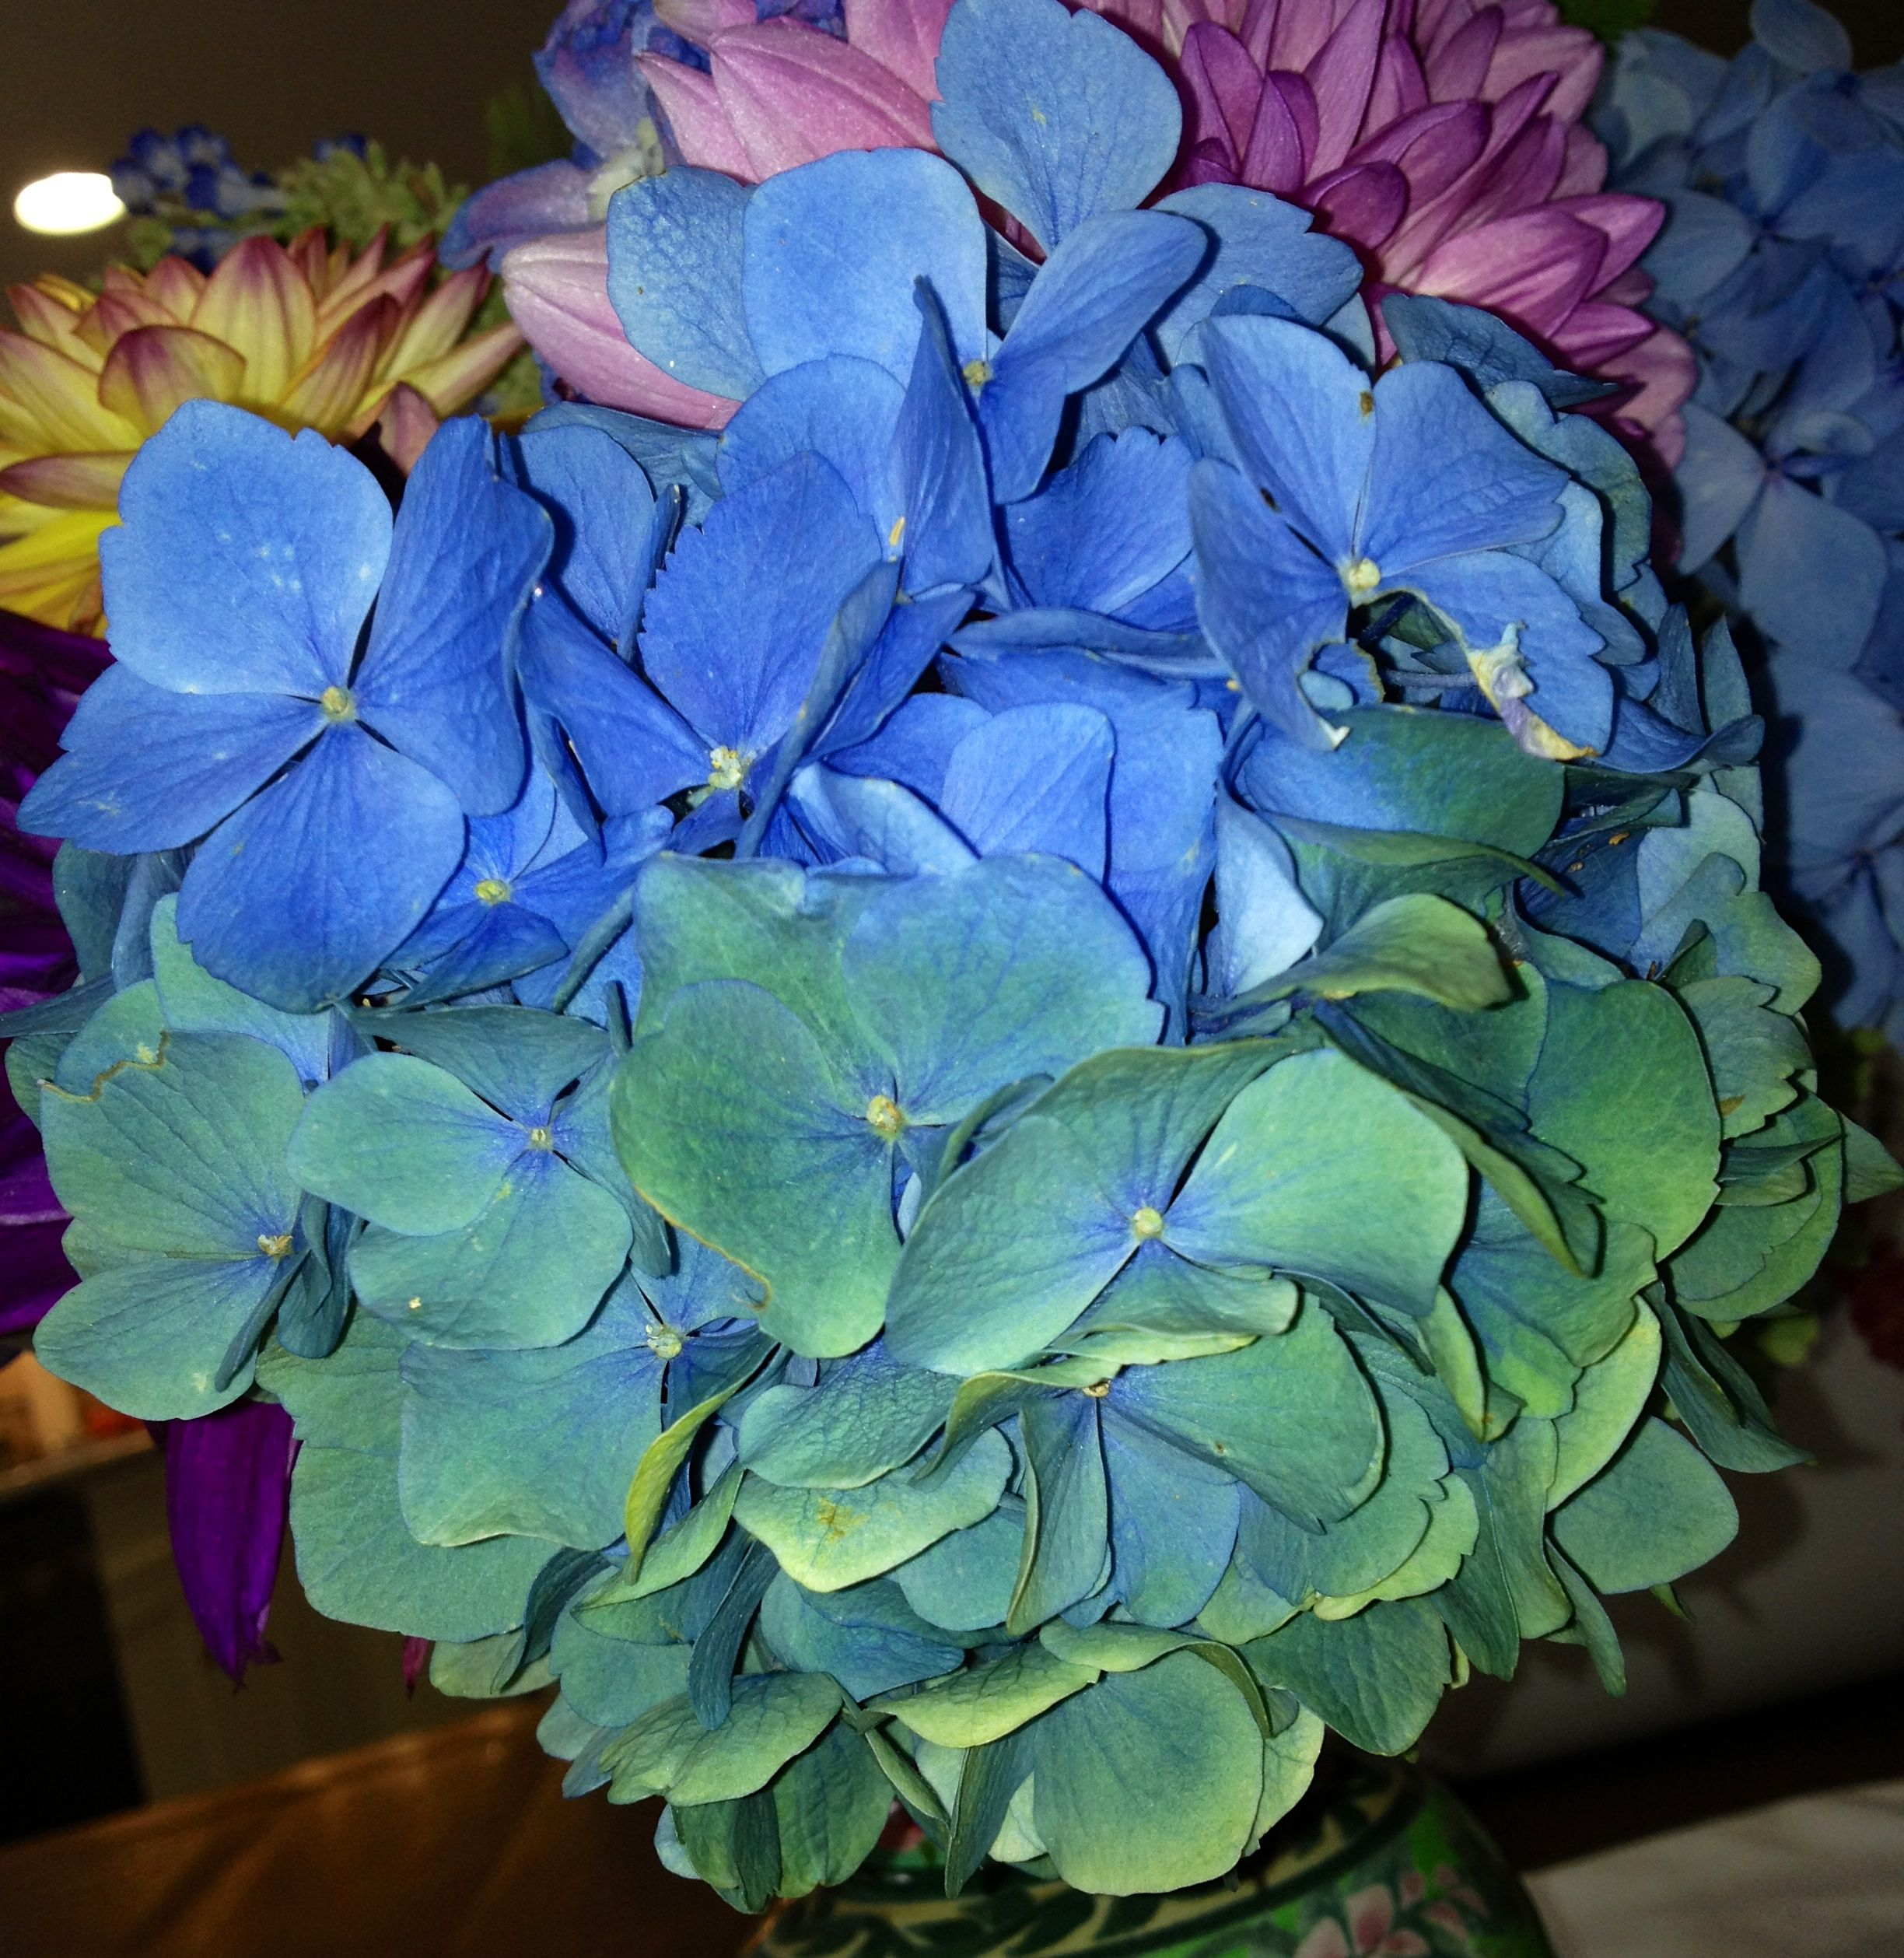 Blue Hydrangeas They Change Into Many Wonderful Shades In The Fall